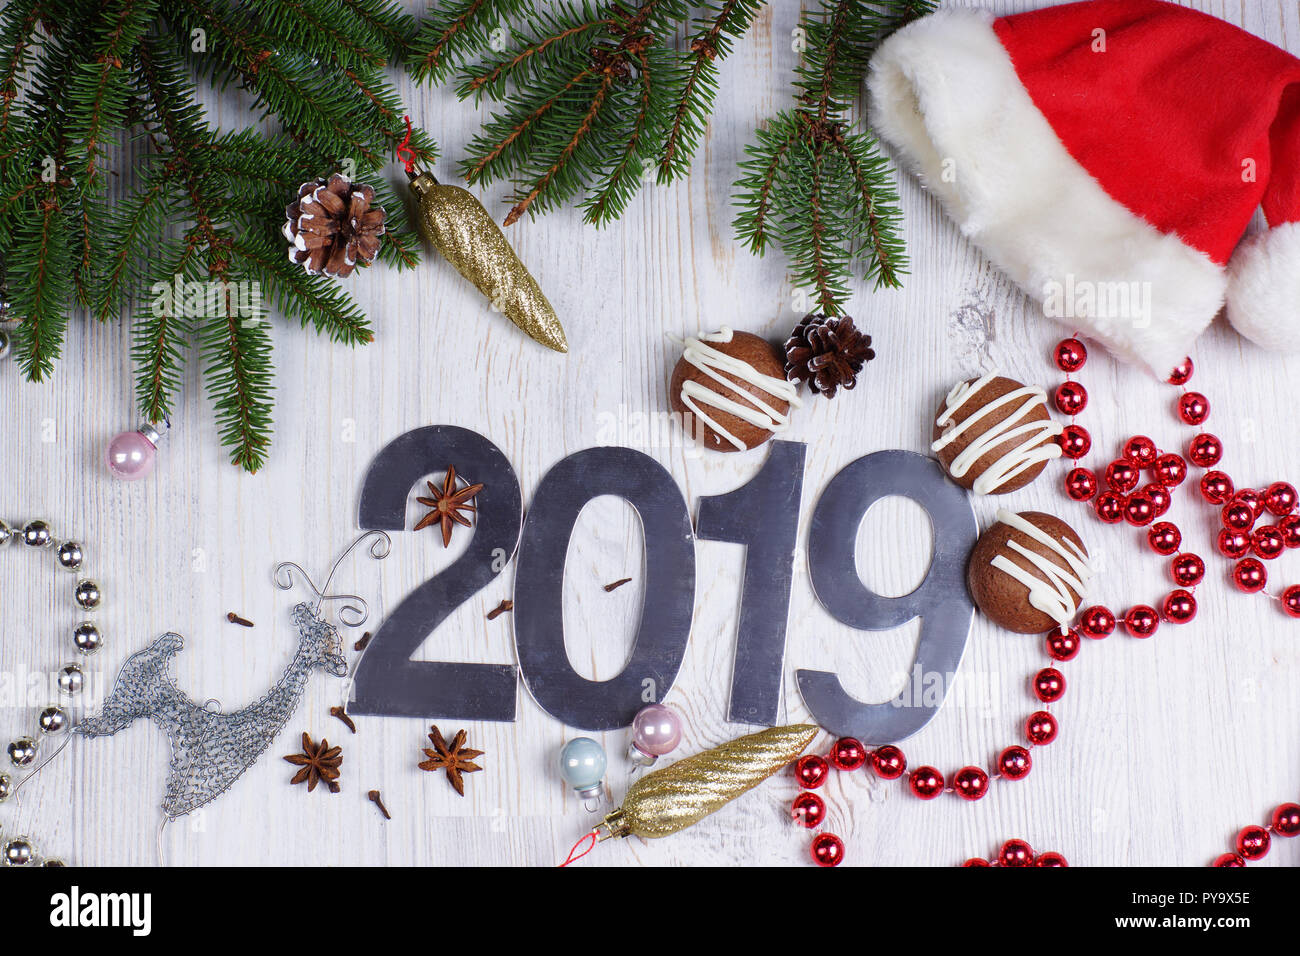 Figures 2019, Cookies And Christmas Decorations With A